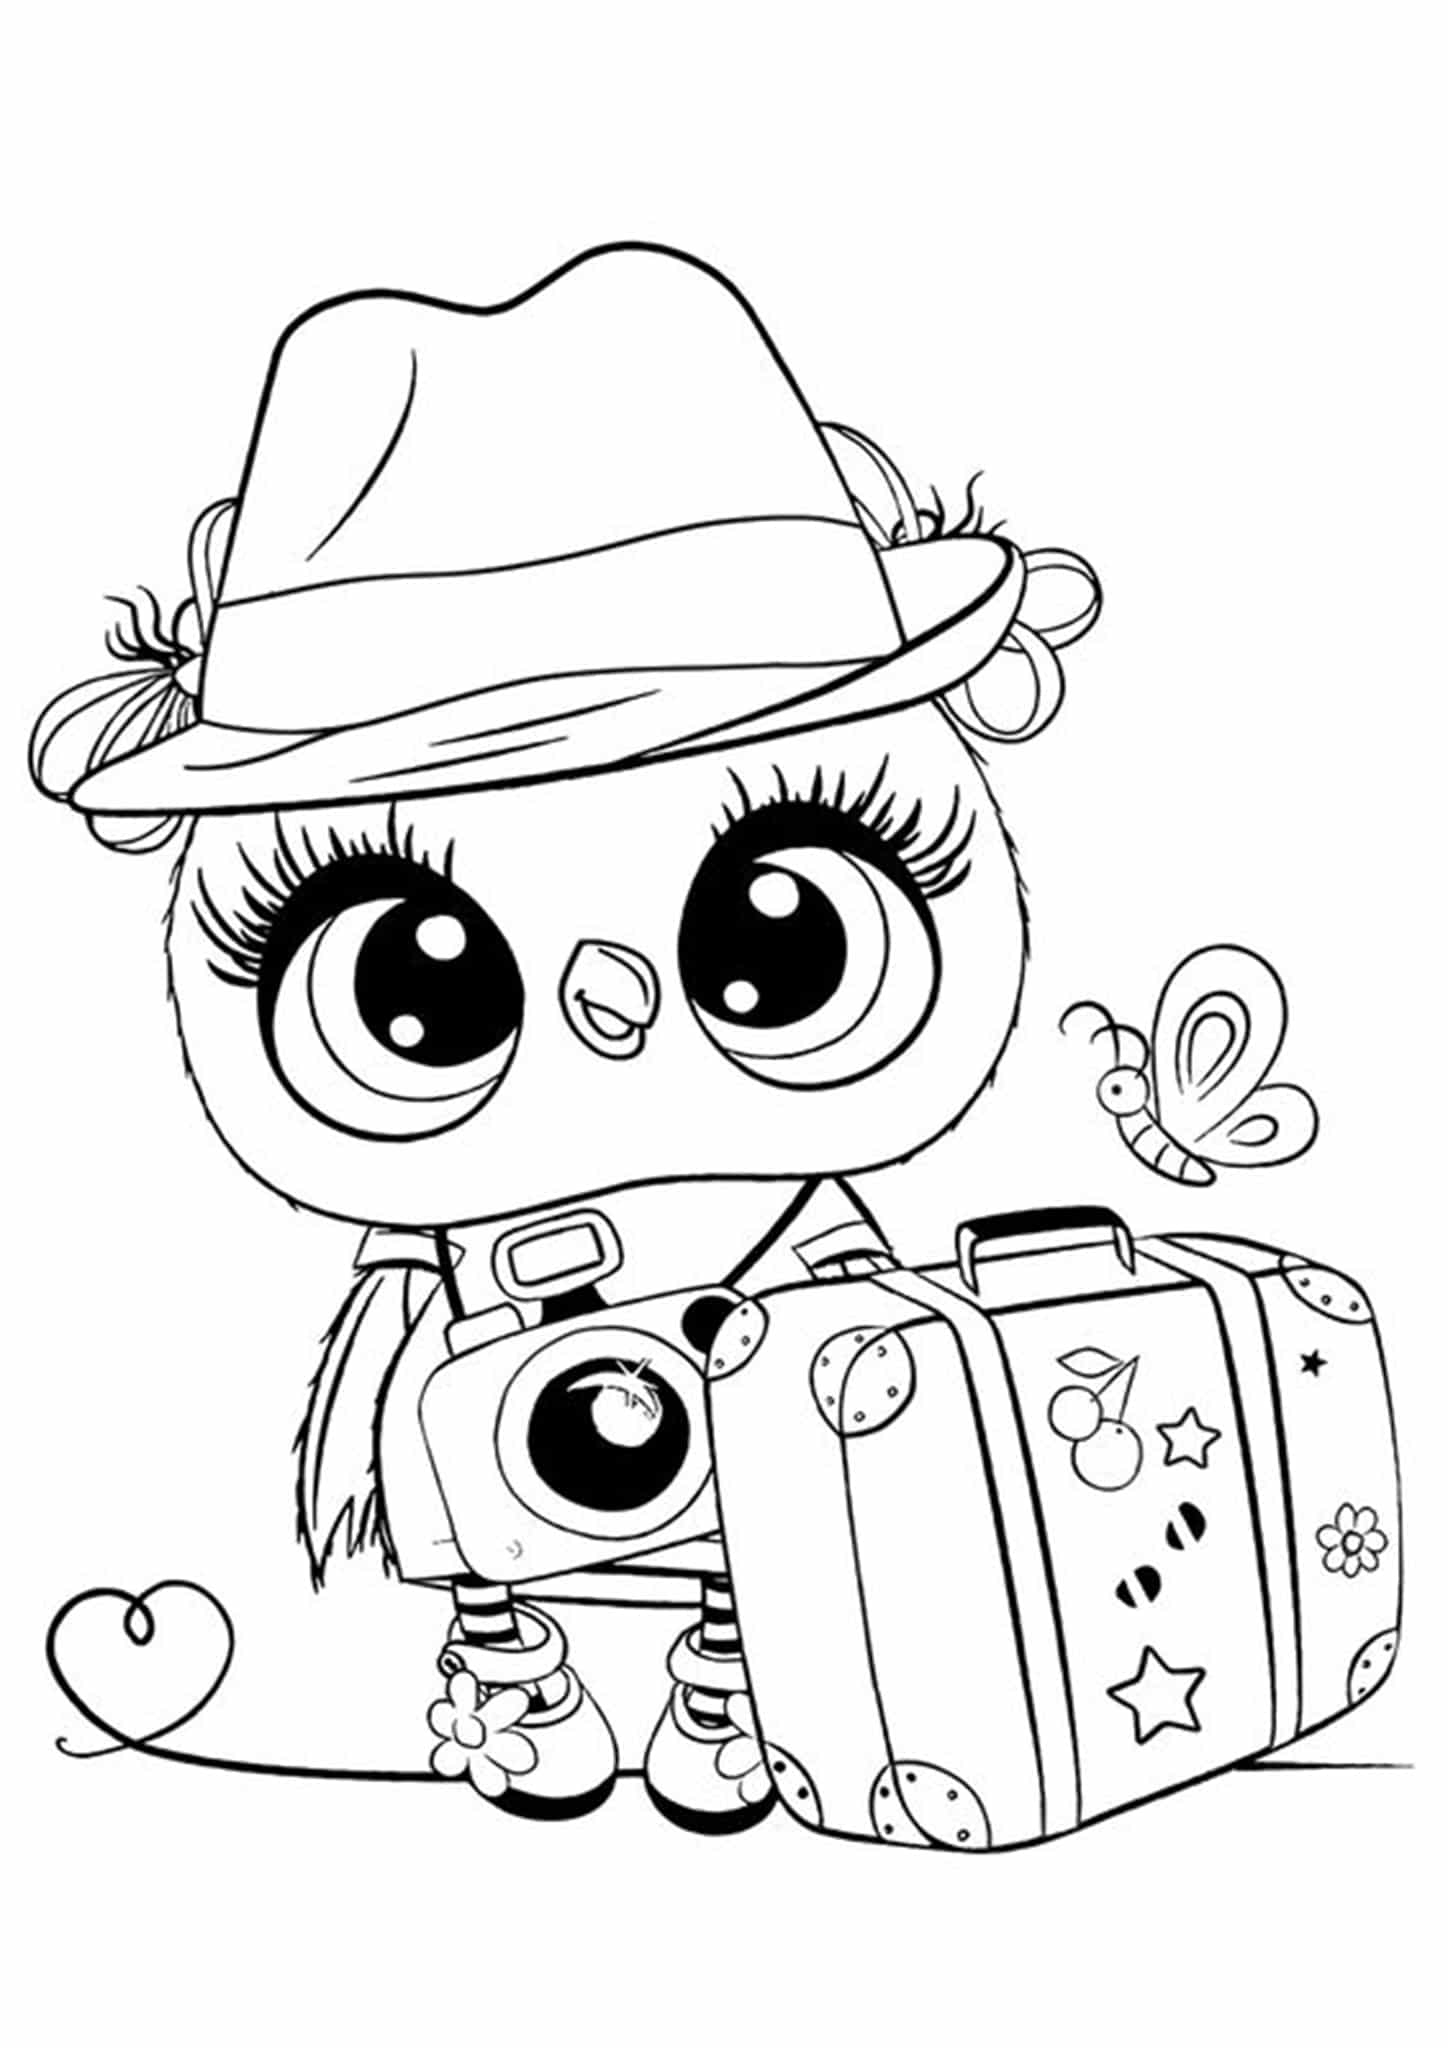 free coloring worksheets addition coloring pages to download and print for free coloring free worksheets